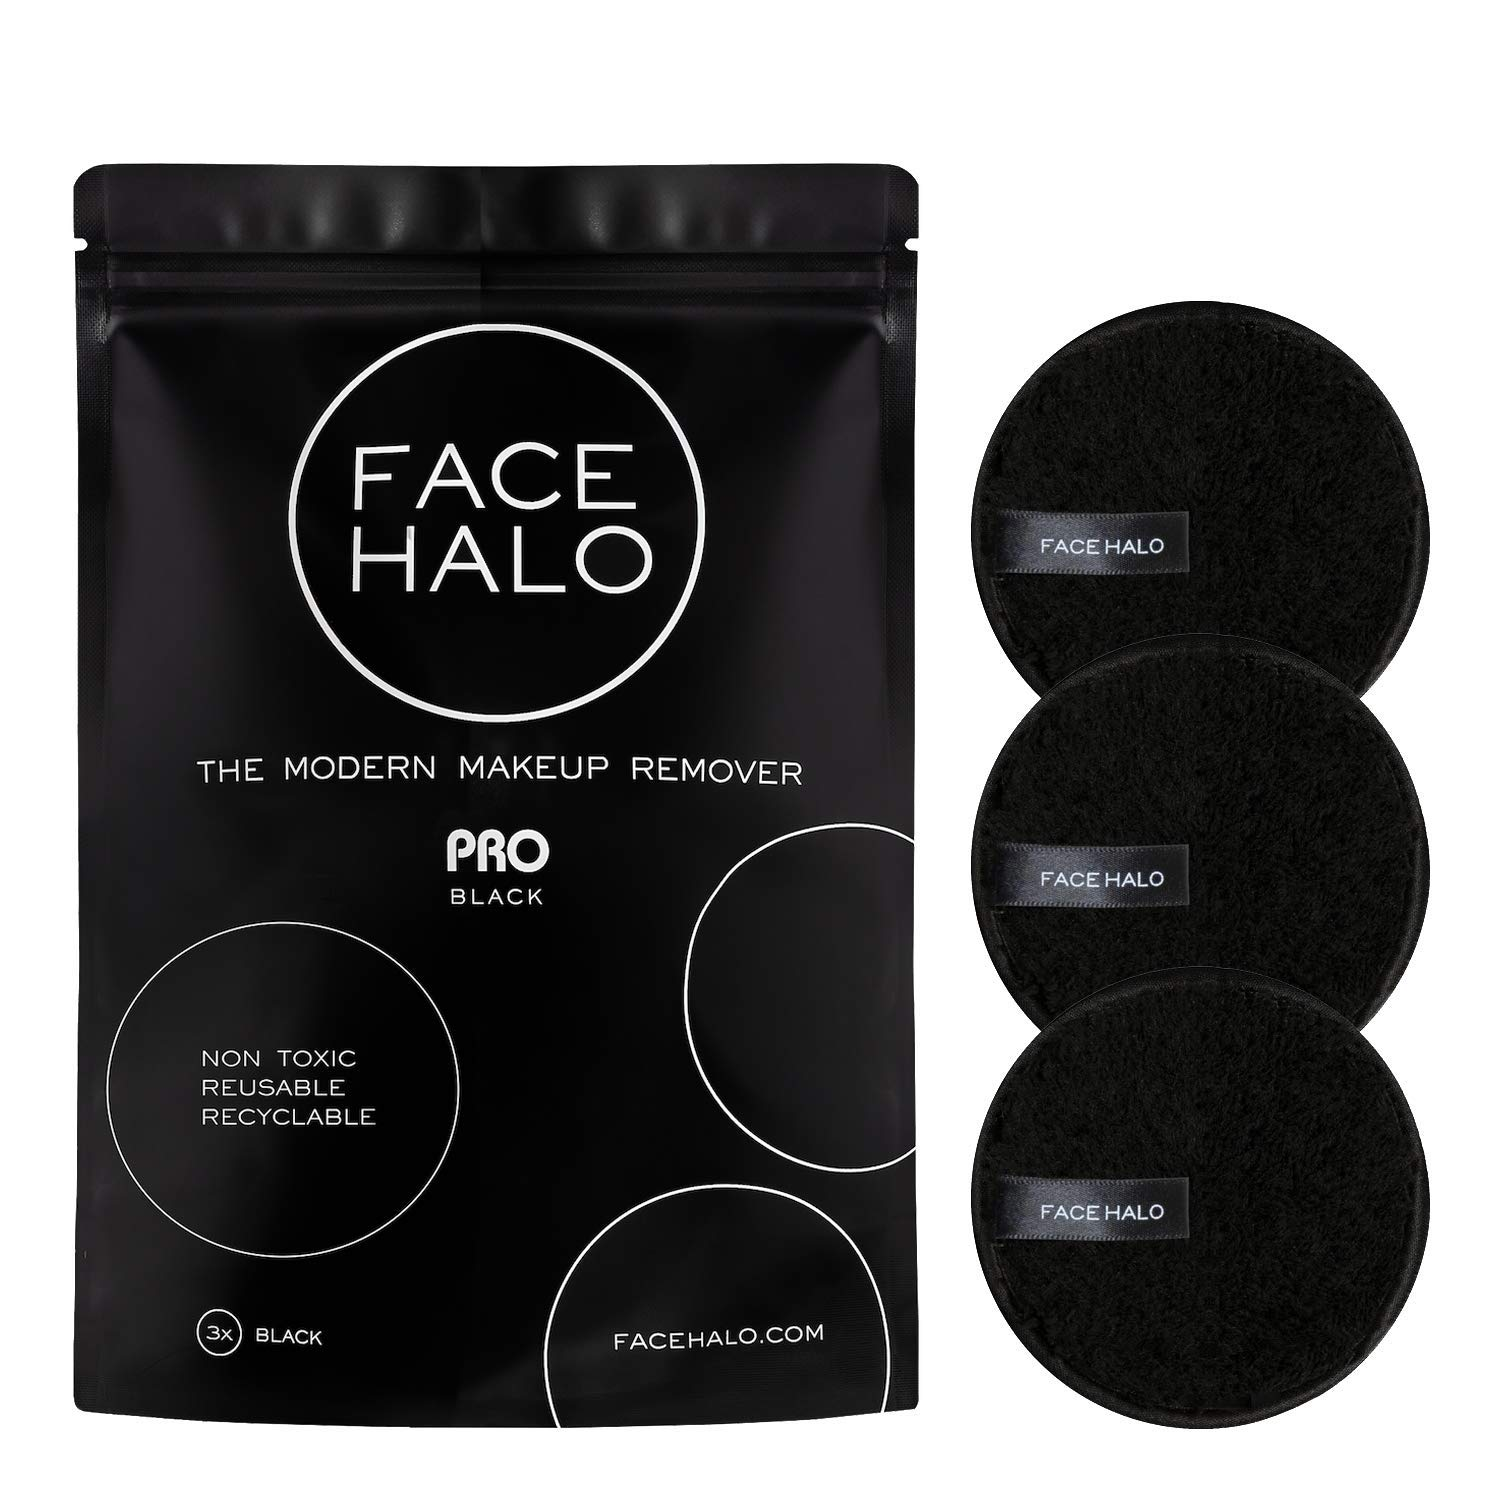 Face Halo | Reusable Makeup Remover Pads, Round Makeup Remover Pads for Heavy Makeup & Masks - Microfiber Makeup Remover Wipes for Mascara, Eye Shadow, Foundation (PRO - 3 Pack)